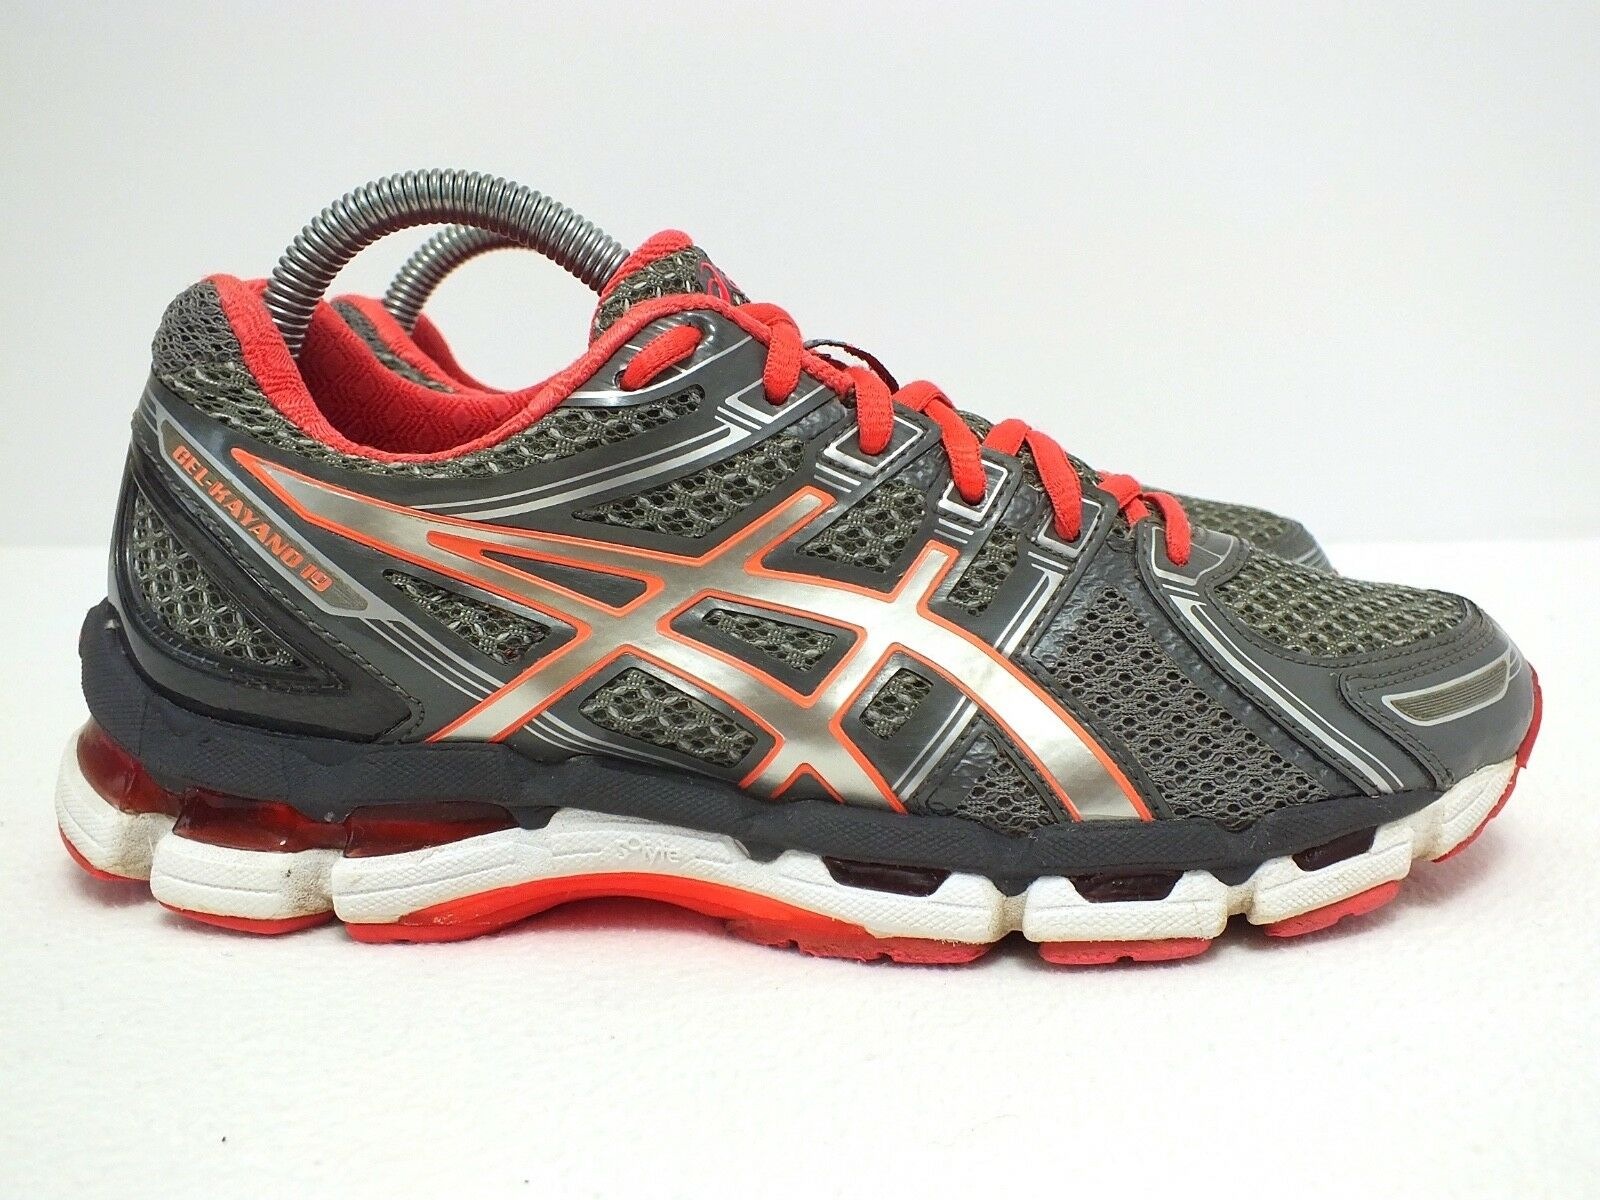 Asics Gel Kayano 19 Women's Running Shoes Gray/Orange Comfortable The latest discount shoes for men and women